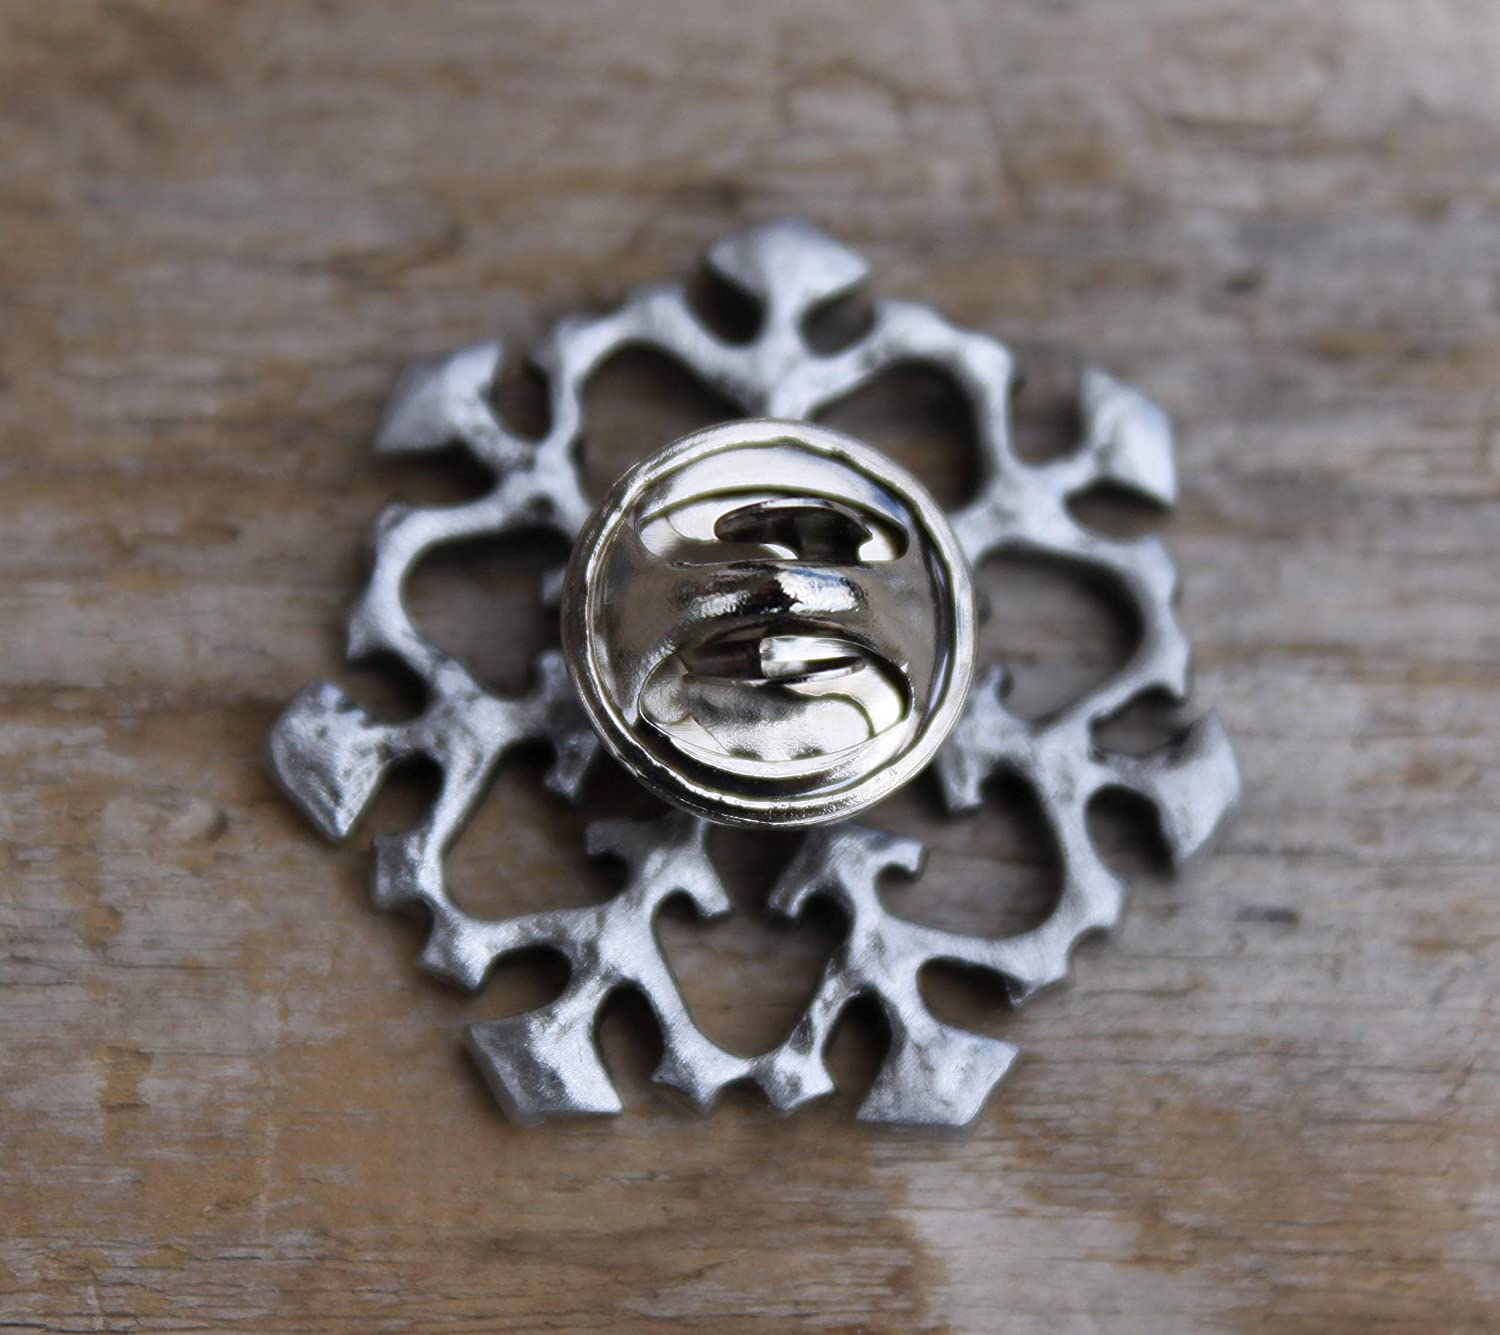 Hastings Pewter Company Lead Free Pewter Snowflake Pin lapel pin tie tac hat pin jewelry